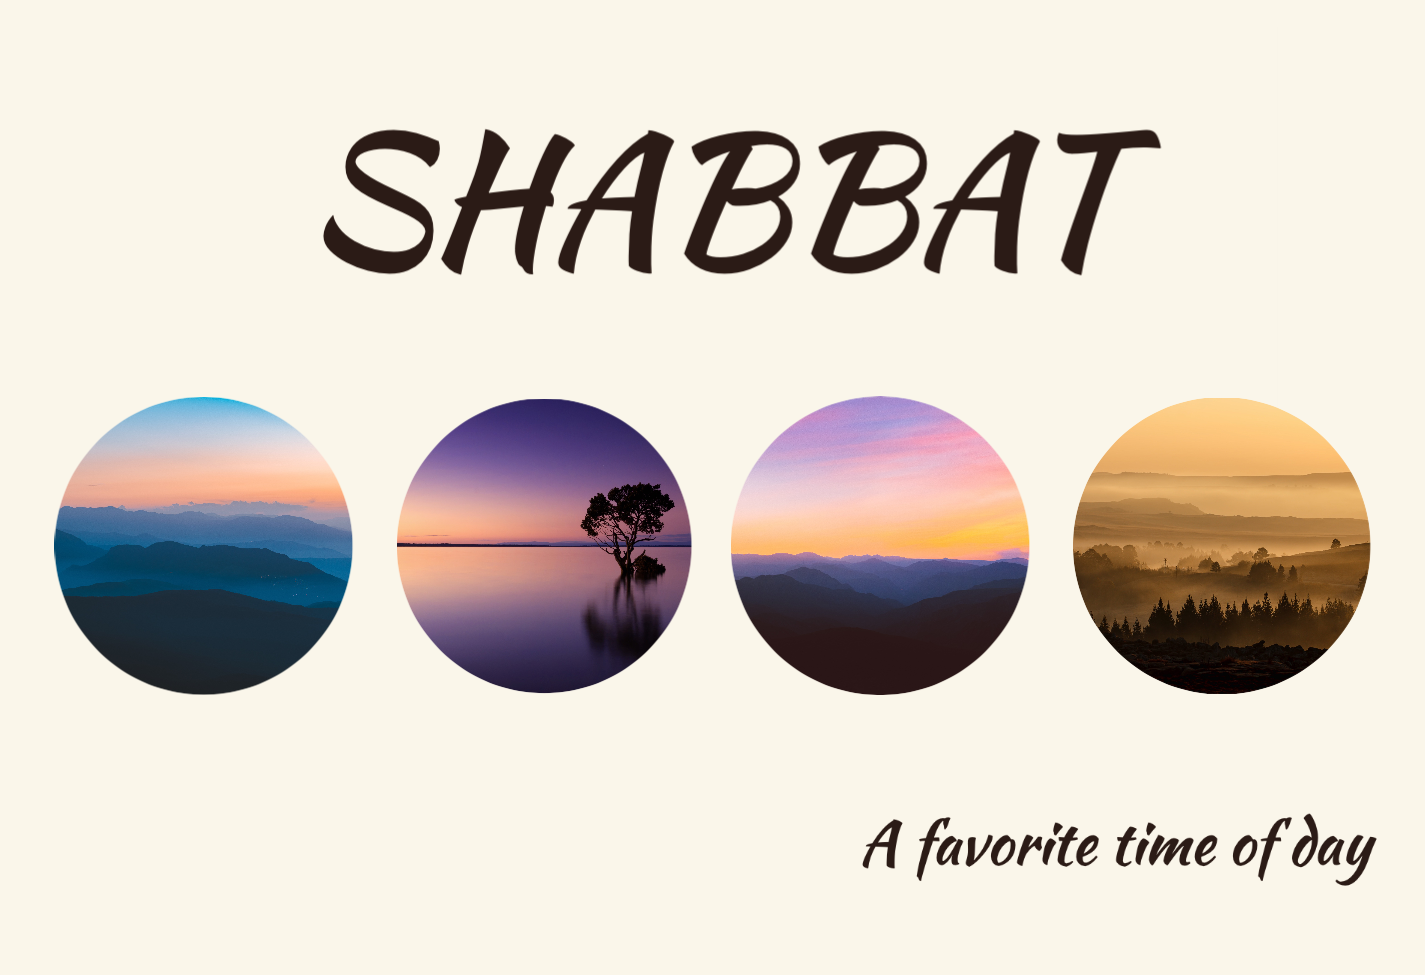 Shabbat, A Favorite time of Day